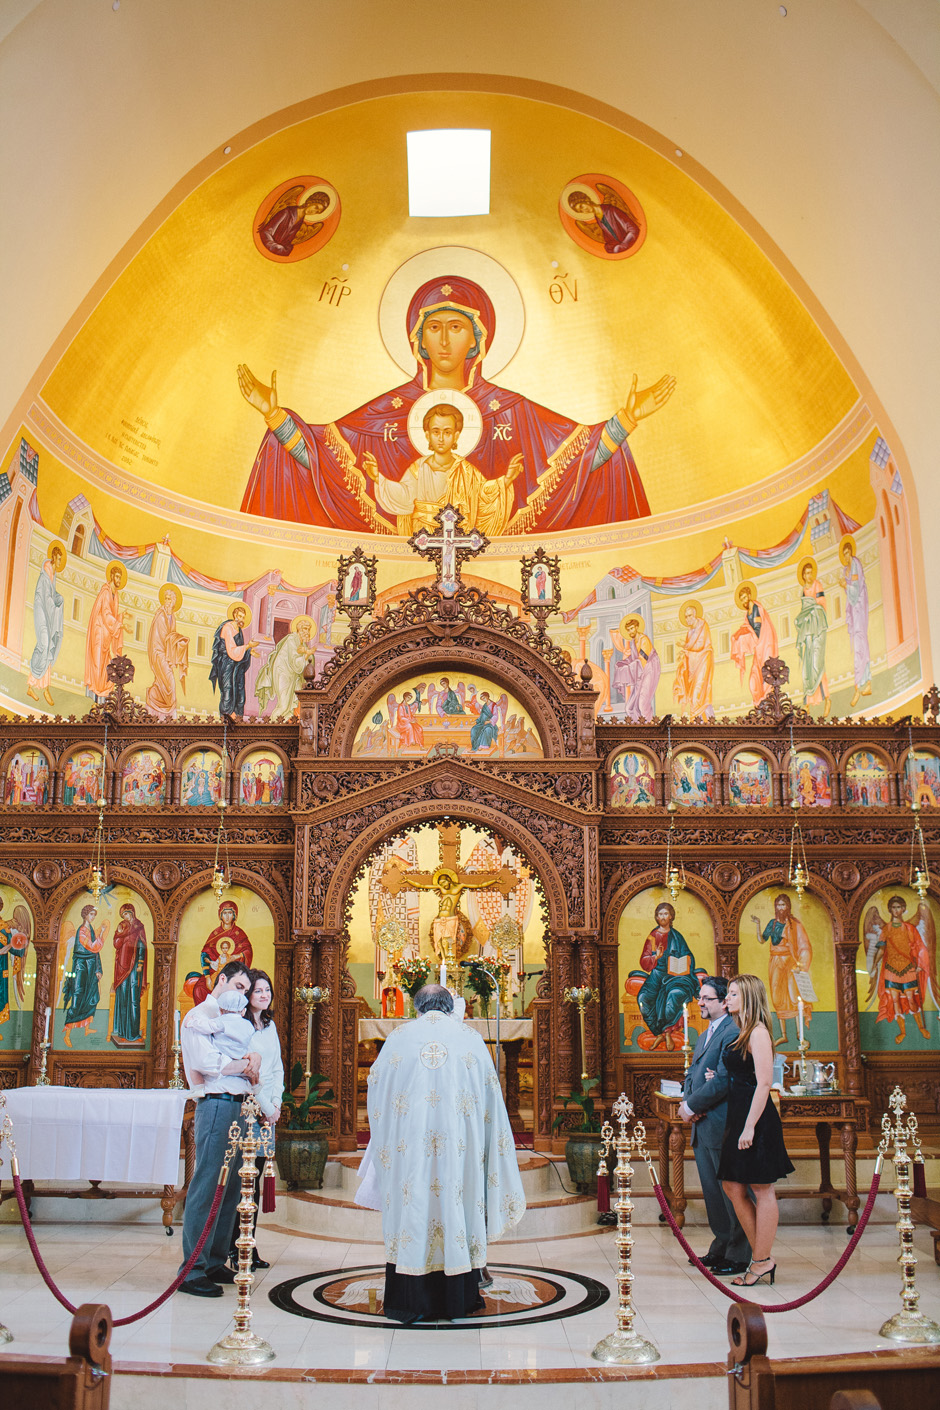 Panagia Greek Orthodox Cathedral in Toronto